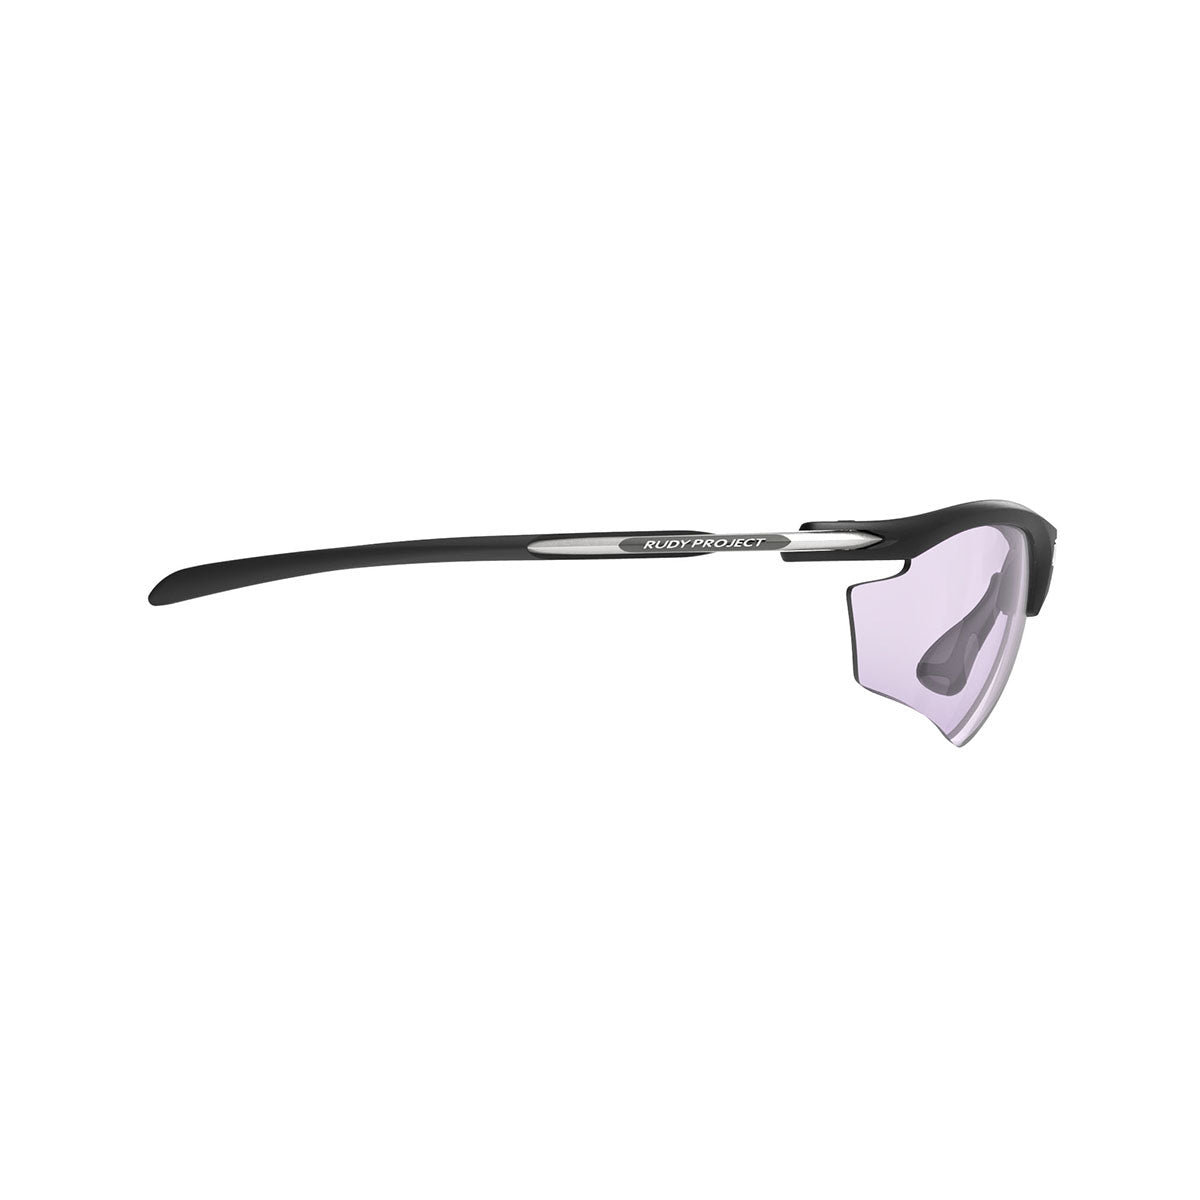 Rudy Project - Rydon Golf - frame color: Matte Black - lens color: ImpactX-2 Photochromic Laser Purple - photo angle: Side Variant Hover Image